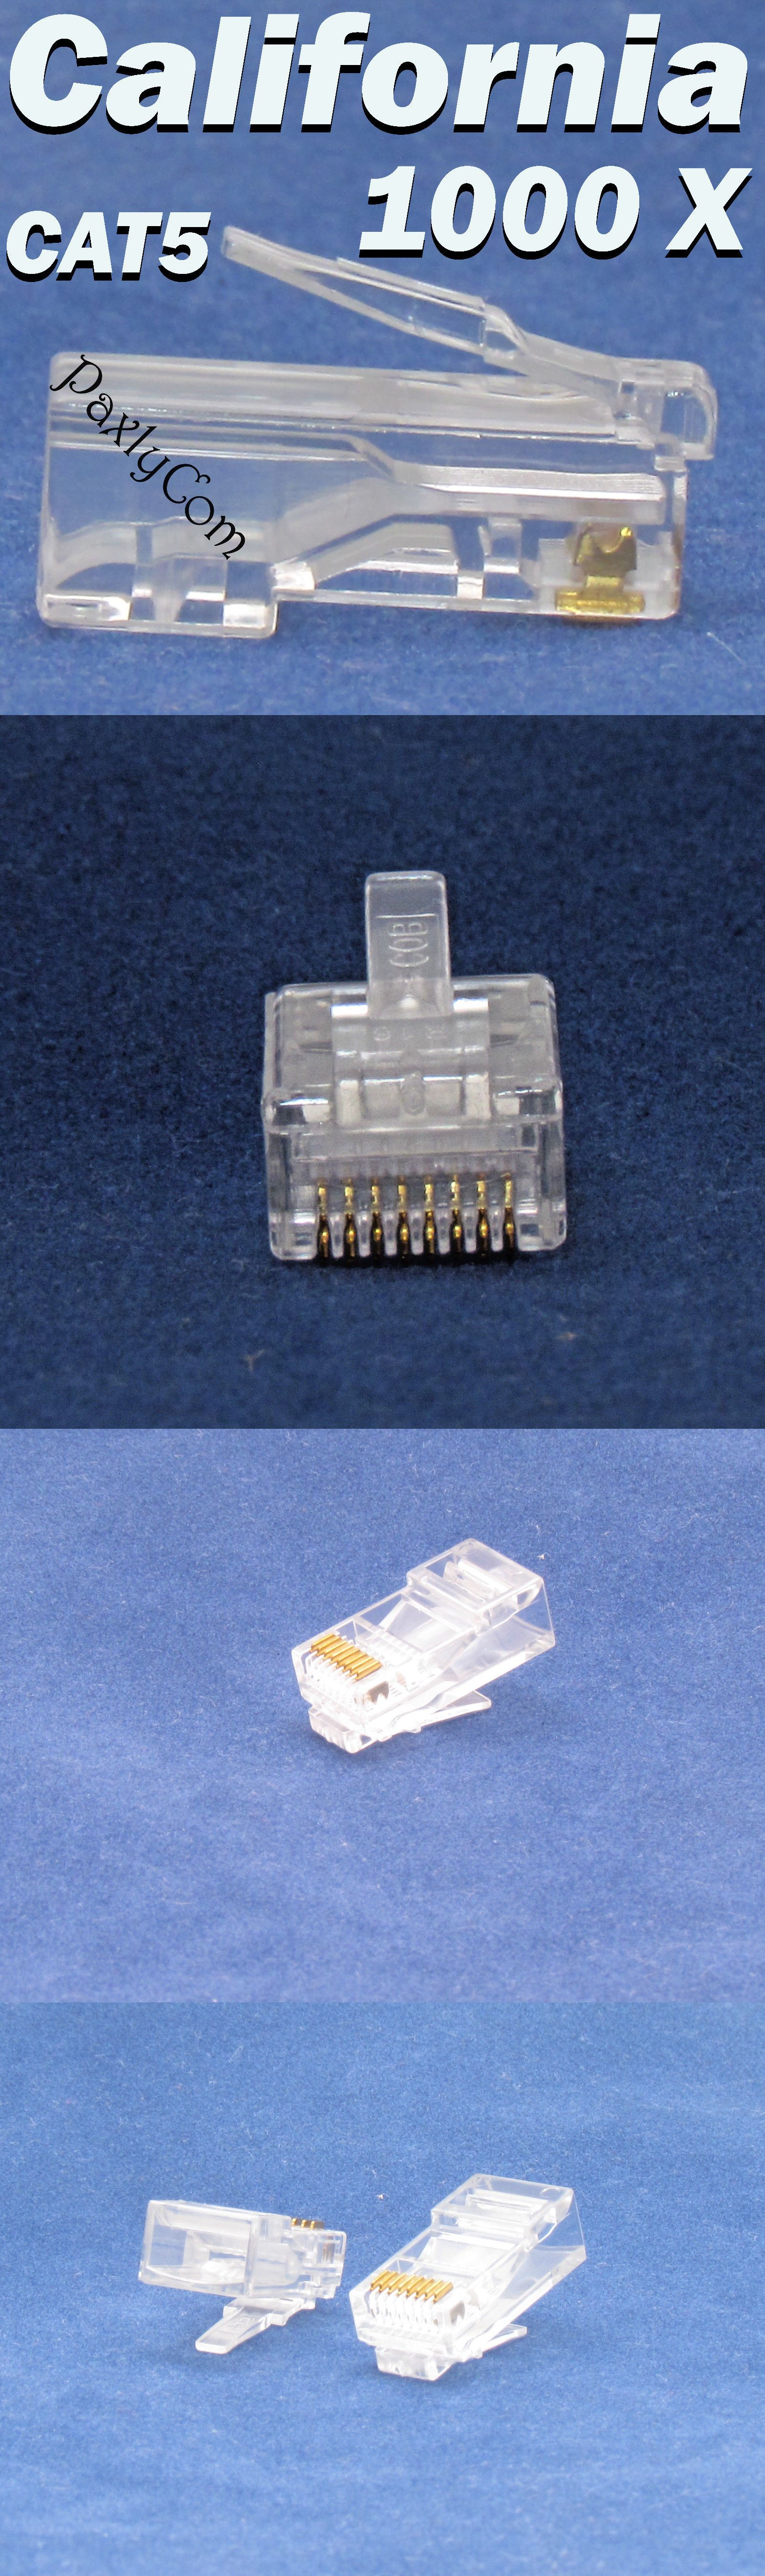 medium resolution of plugs jacks and wall plates 67279 1000 x rj45 end plug cat5 cat5e modular lan connector internet ethernet cable 8p buy it now only 17 35 on ebay